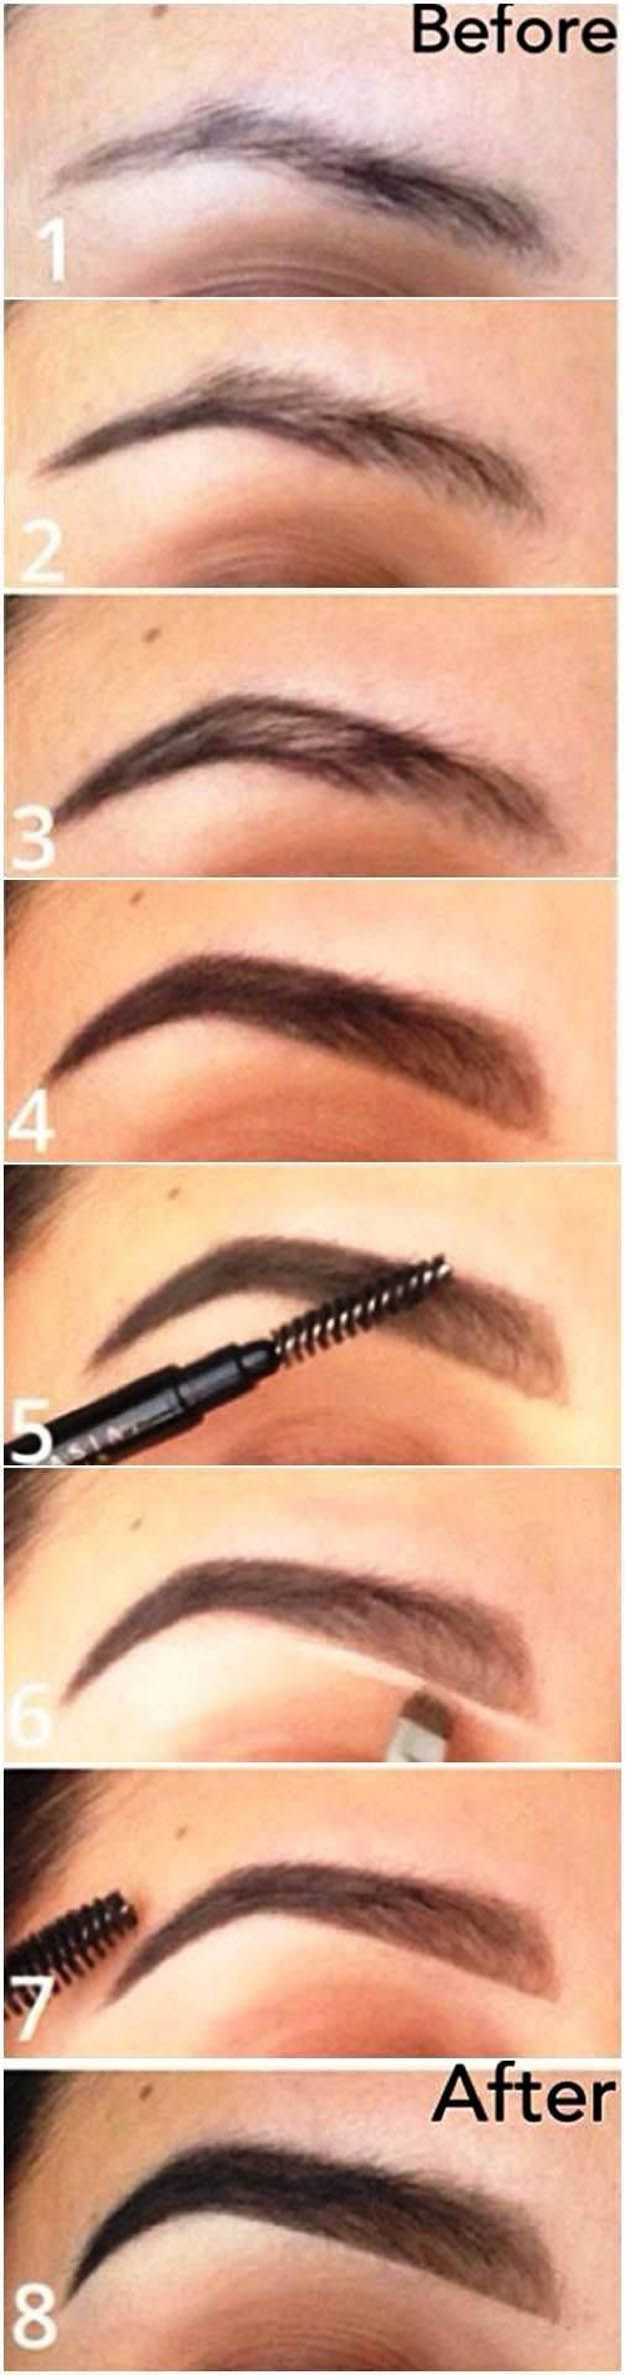 How to Fill in Your Brows | Eyebrow Makeup Tutorials for Beginners by Makeup Tut…